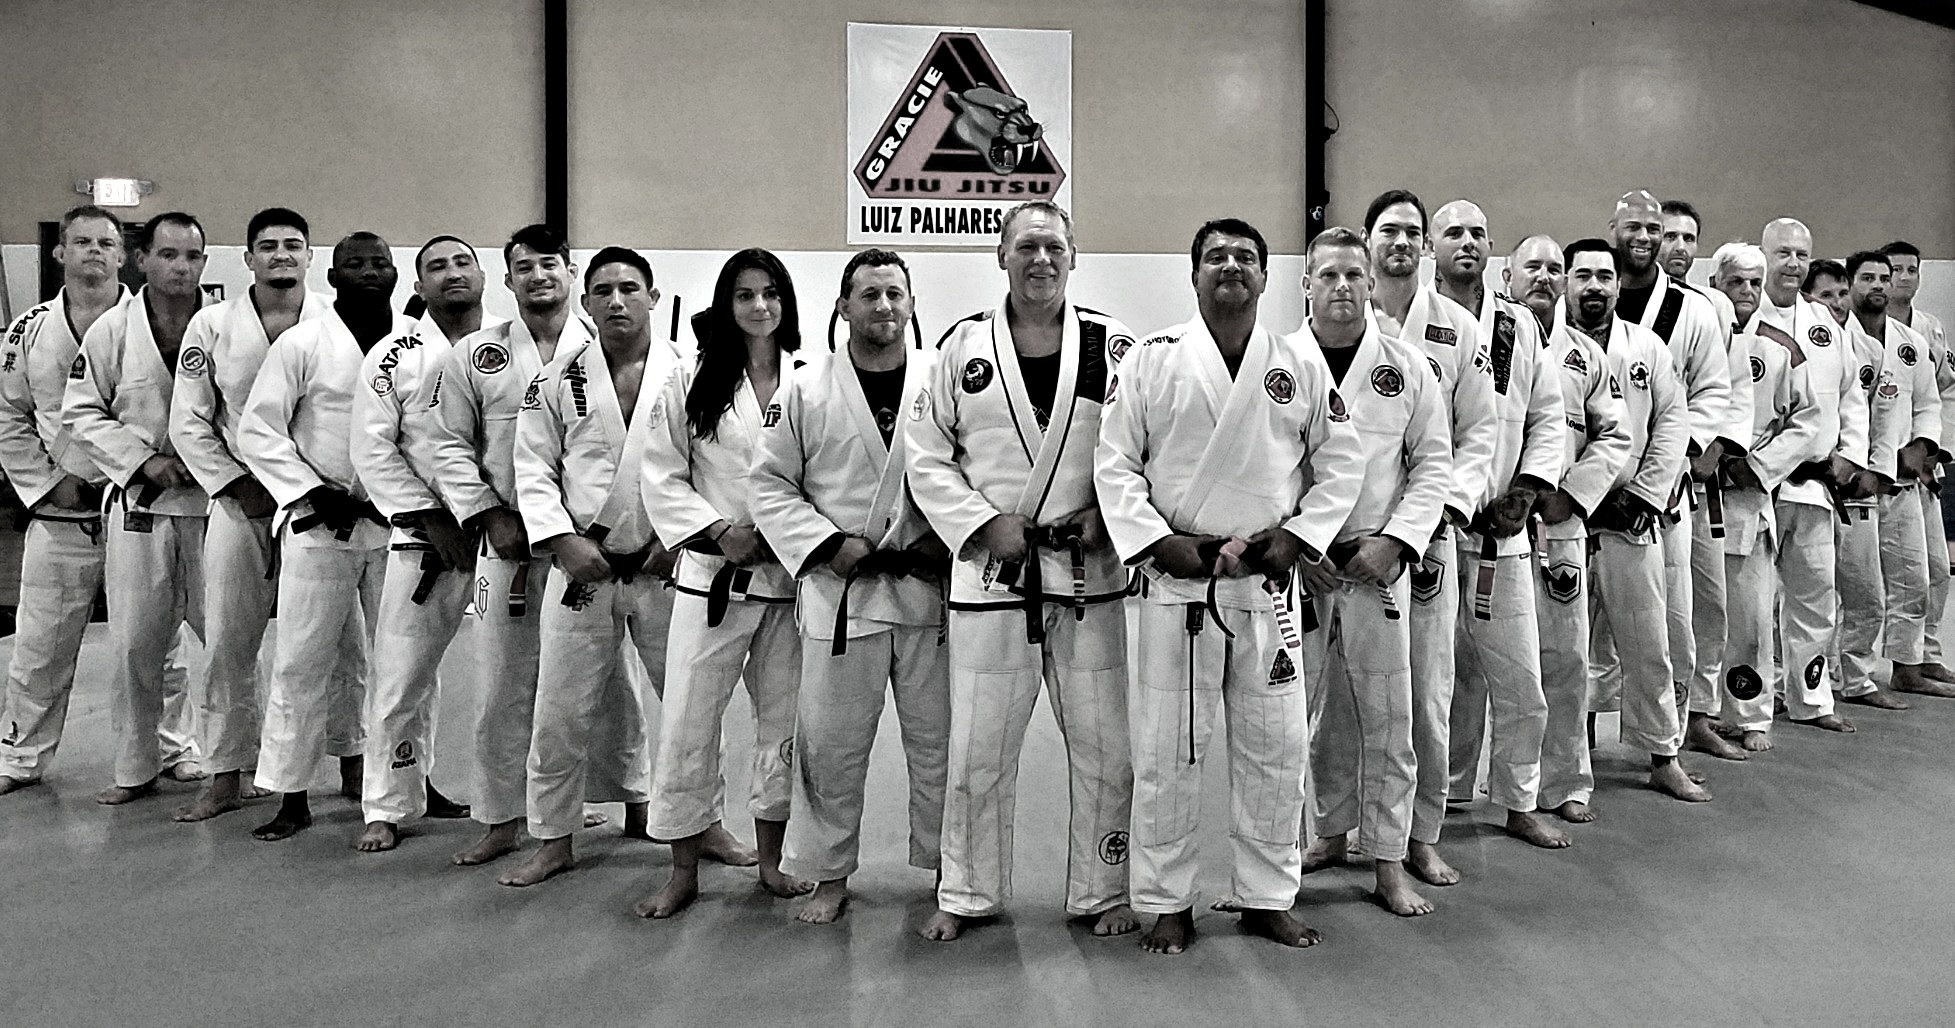 Luiz Palhares Black Belts